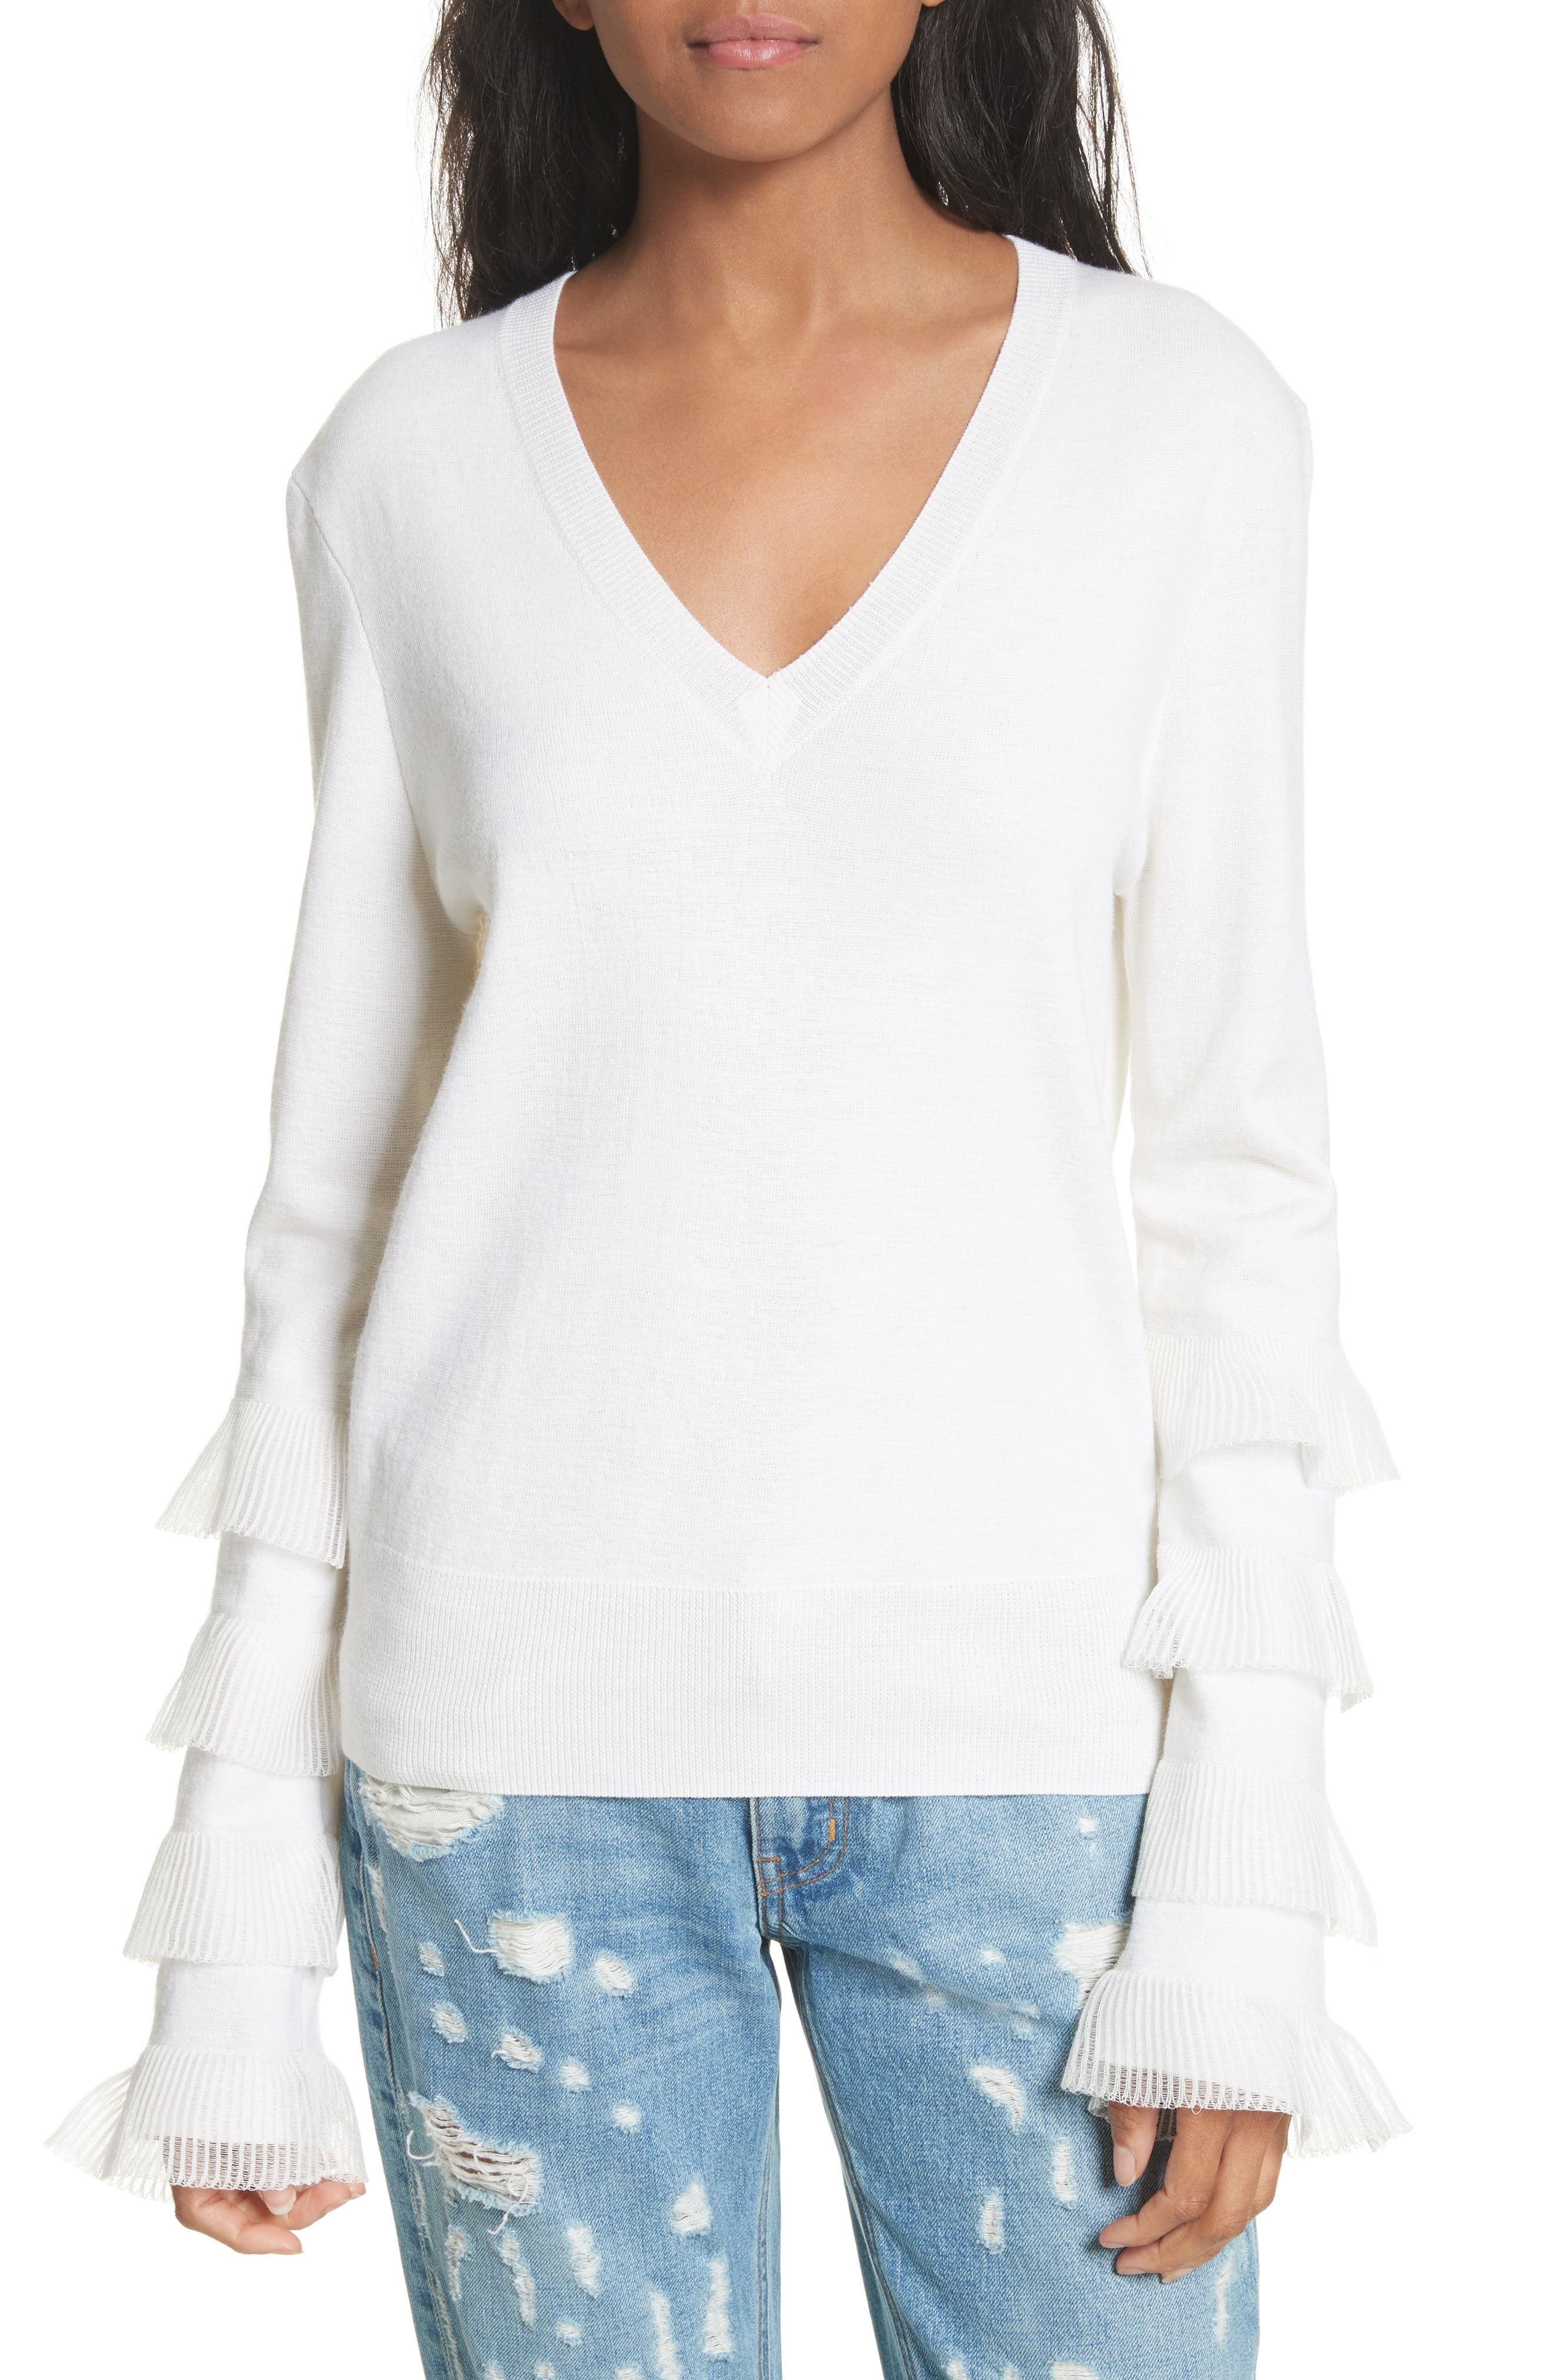 Derek Lam 10 Crosby Tiered Ruffle Sleeve Sweater